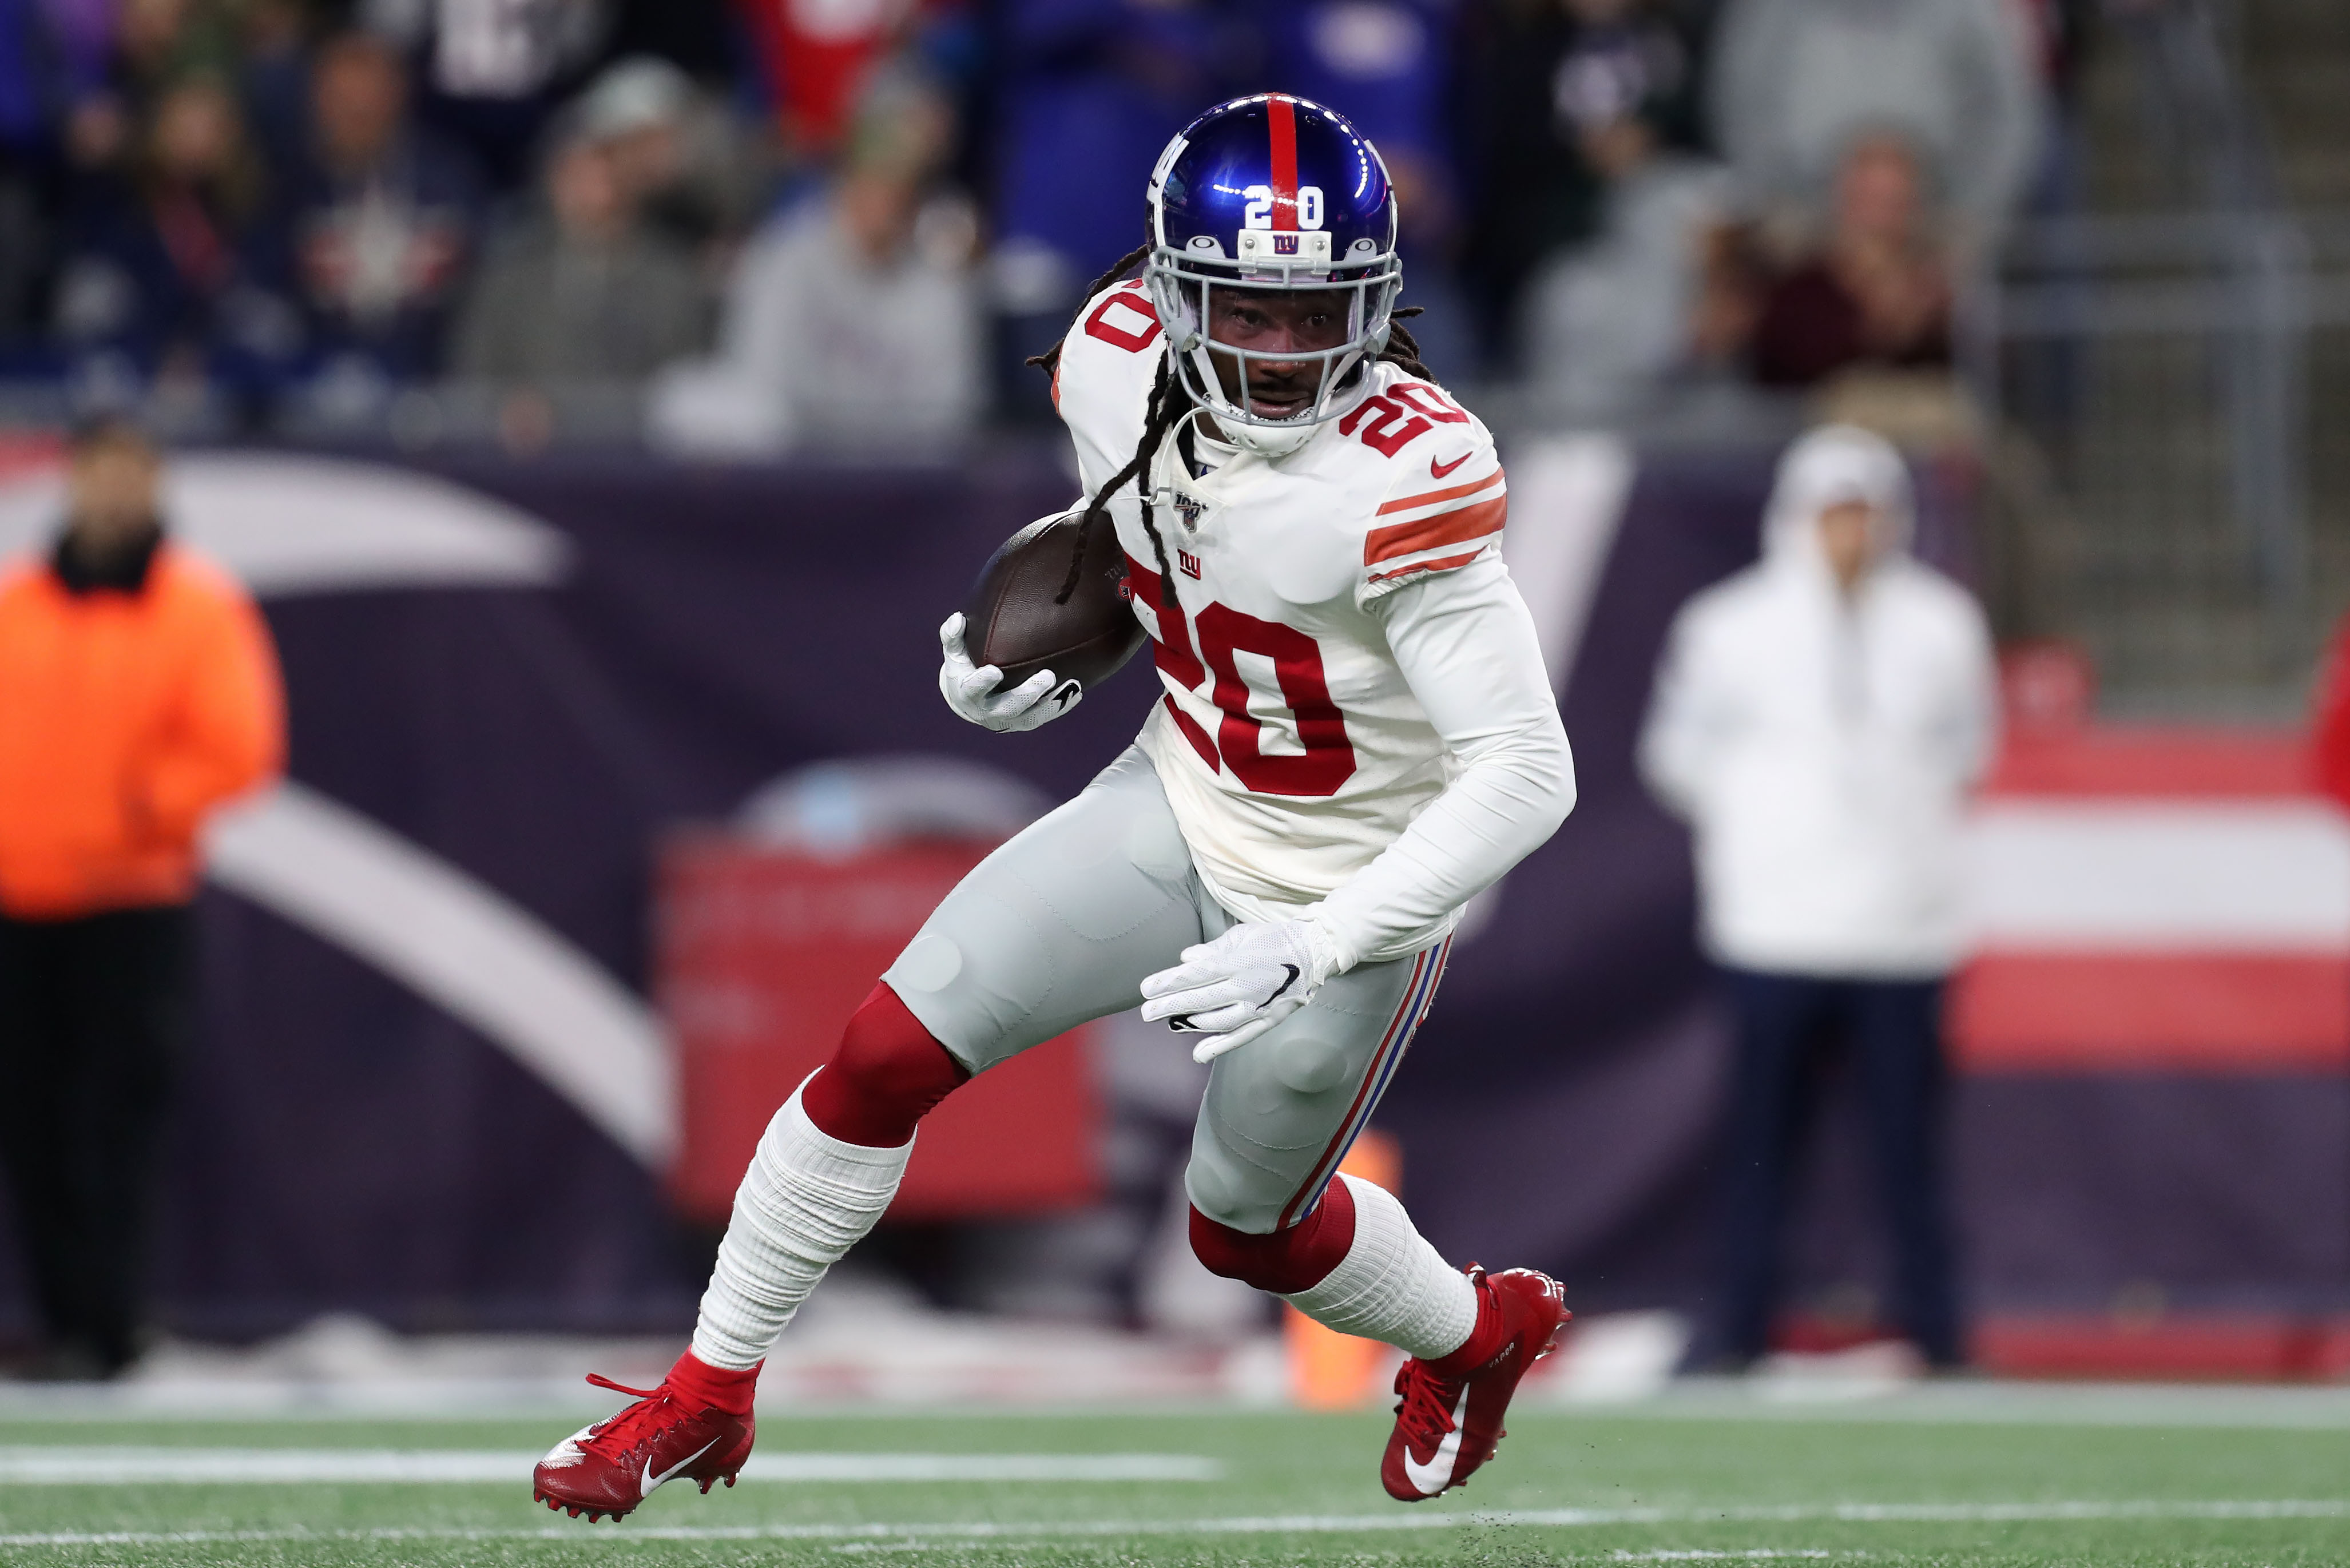 New York Giants cornerback Janoris Jenkins runs with the ball after intercepting a pass from the New England Patriots during the first half at Gillette Stadium.